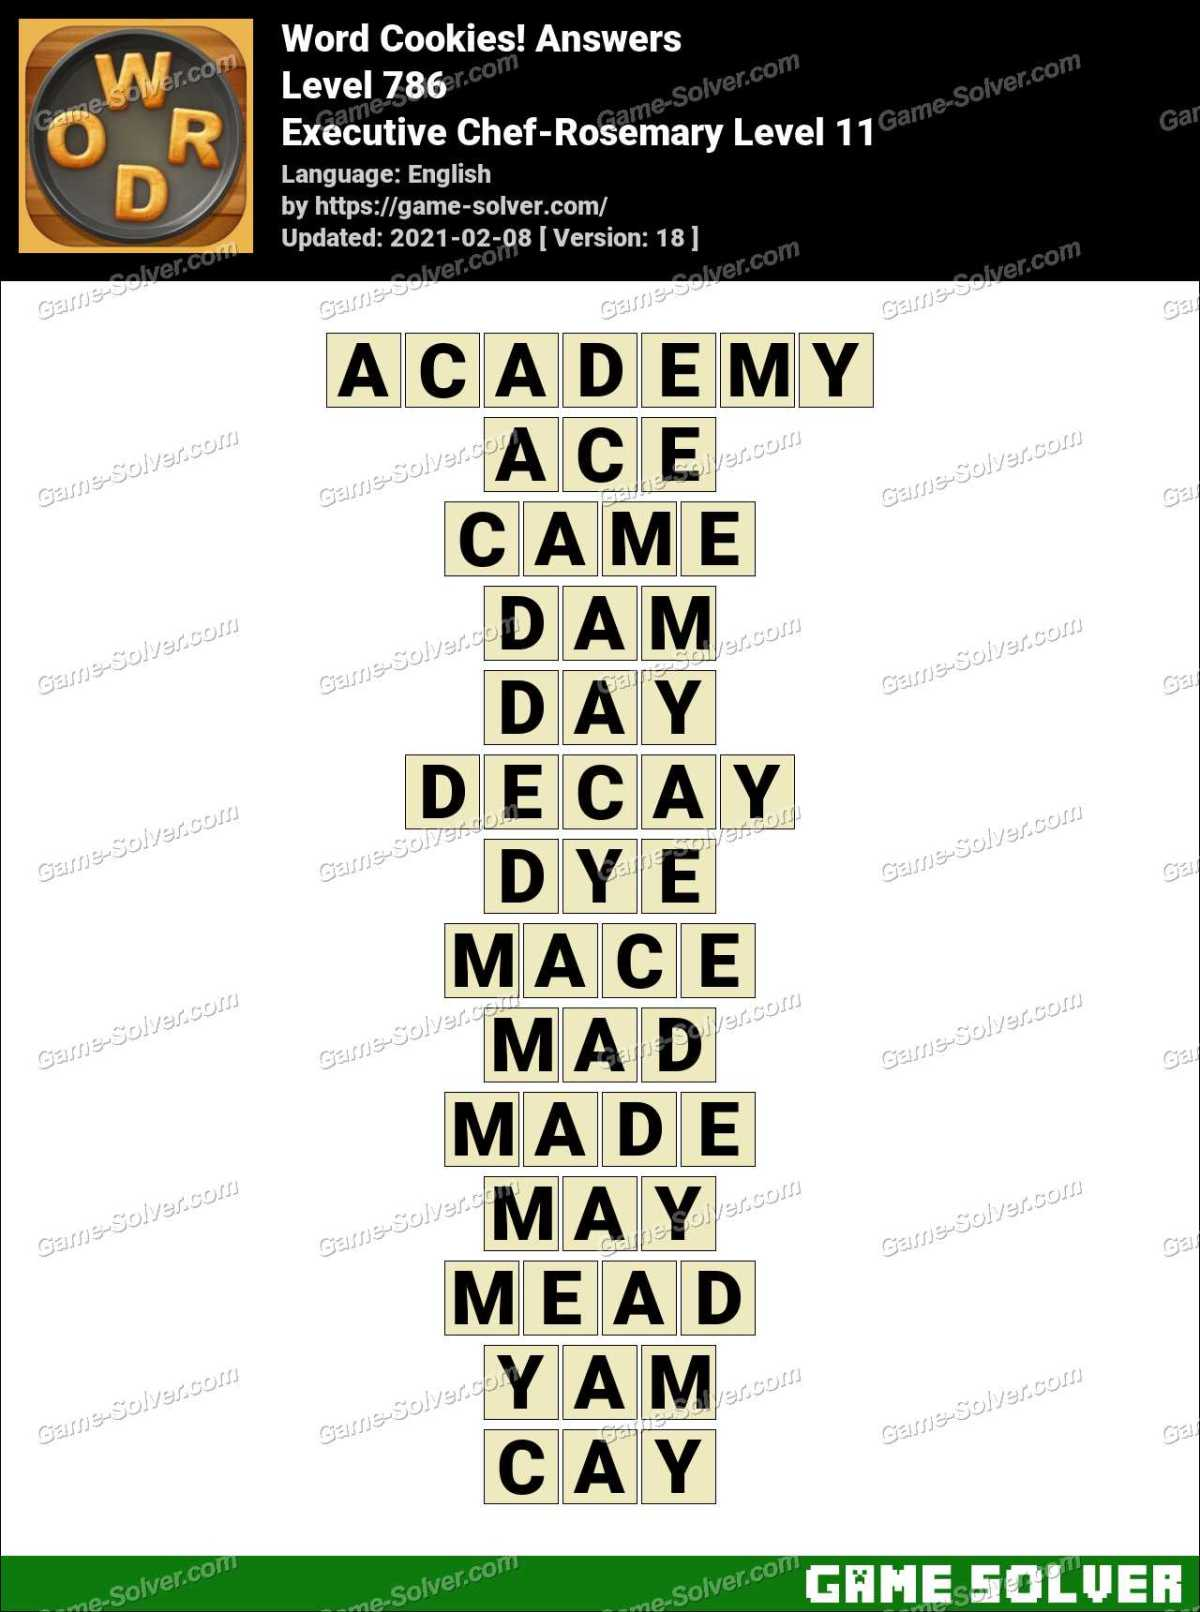 Word Cookies Executive Chef-Rosemary Level 11 Answers